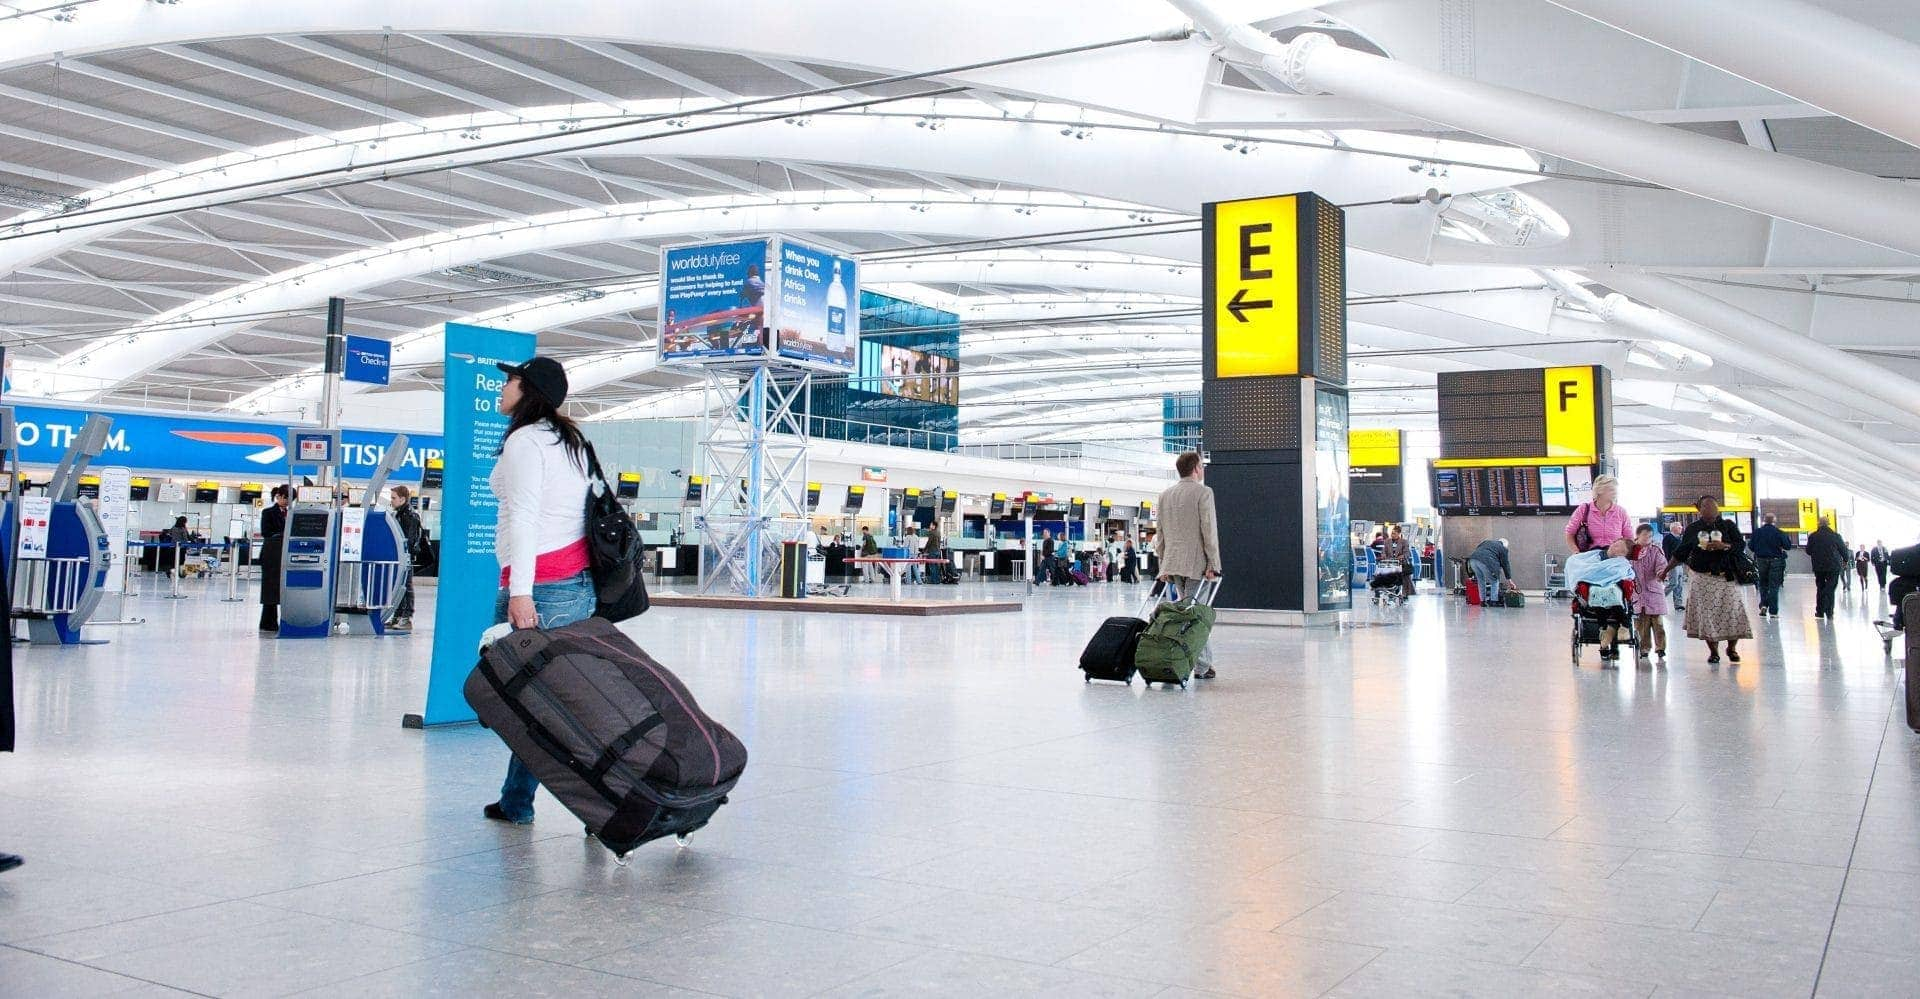 Heathrow airport has very successful 2016 due to great passenger service